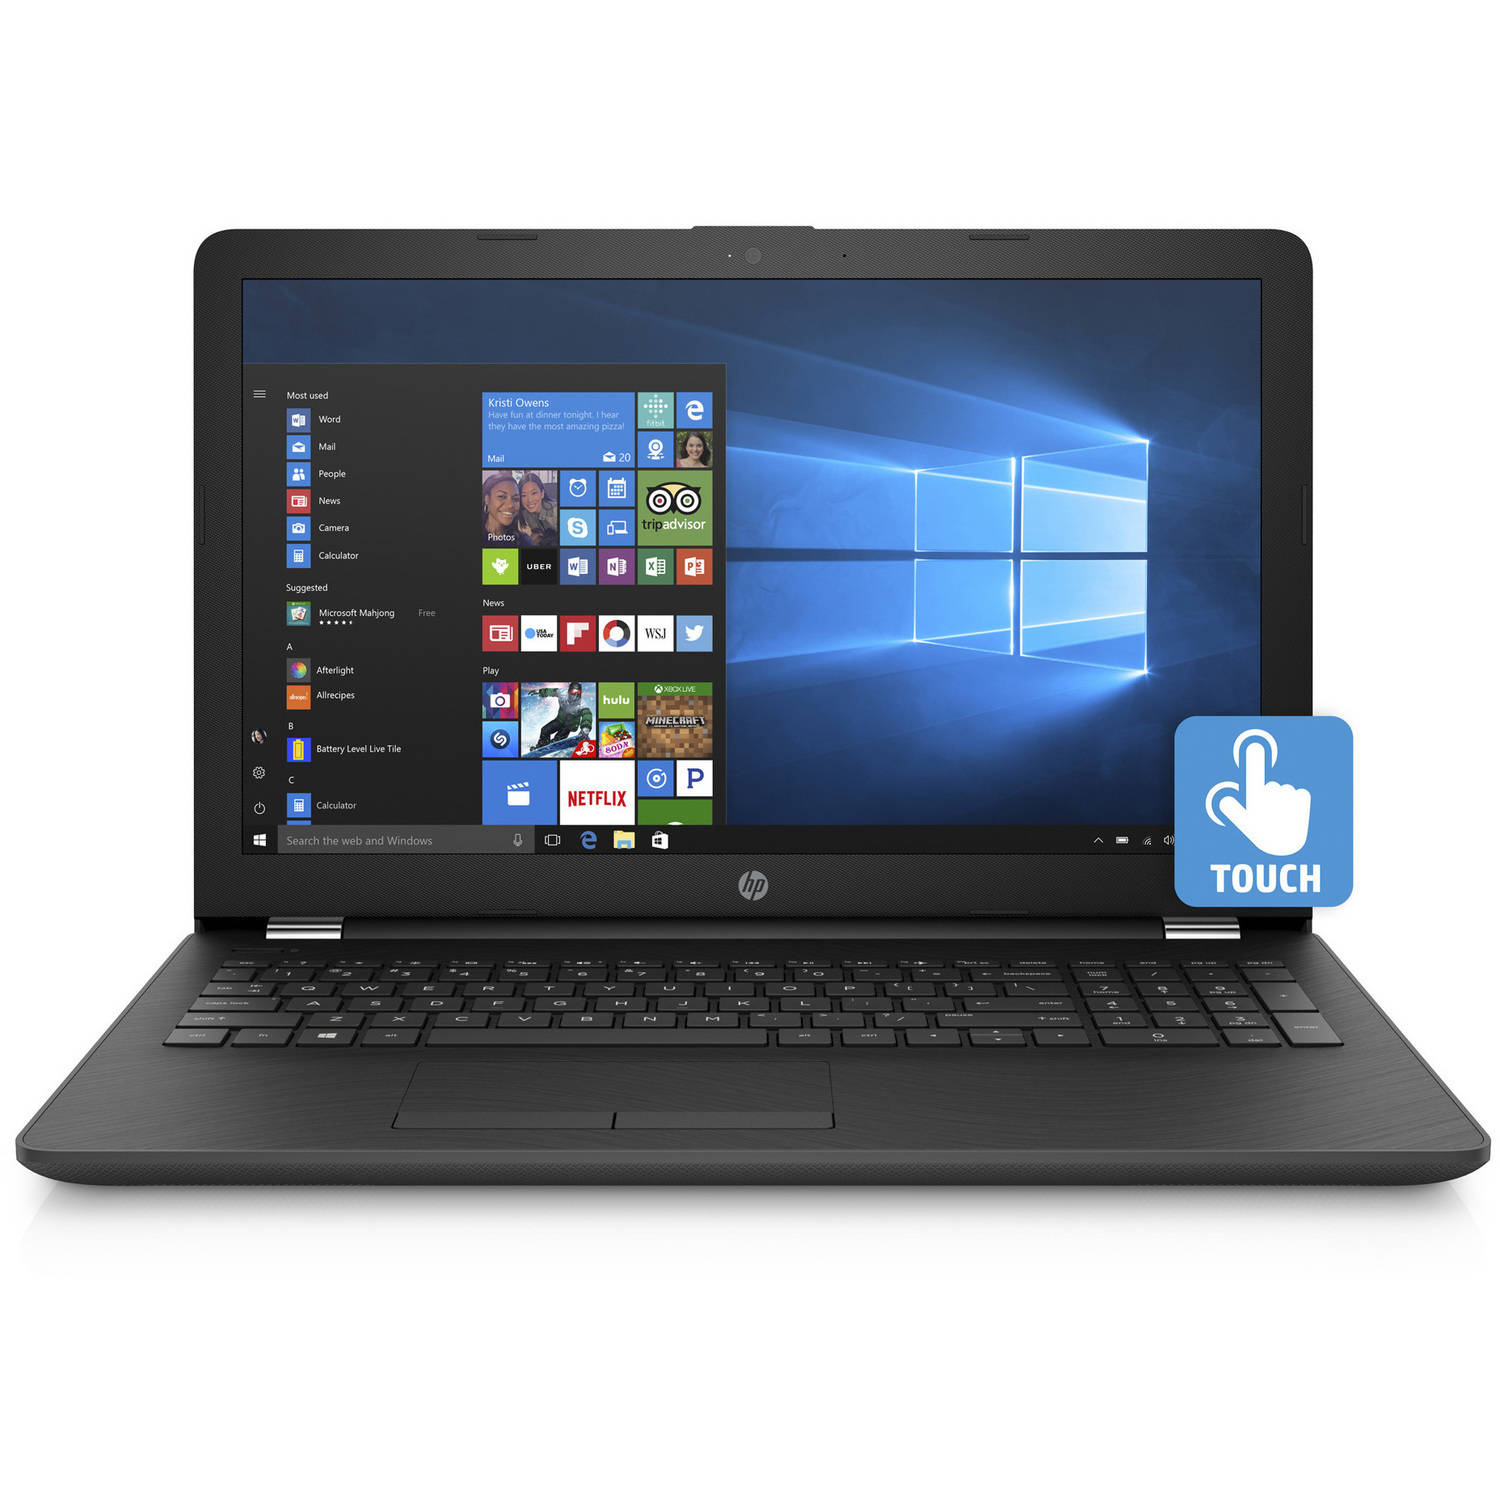 "HP 15-Bw040Nr 15.6"" Laptop, Touchscreen, Windows 10, AMD Quad-Core A12-9720P Processor, 8GB RAM, 1TB Hard Drive"